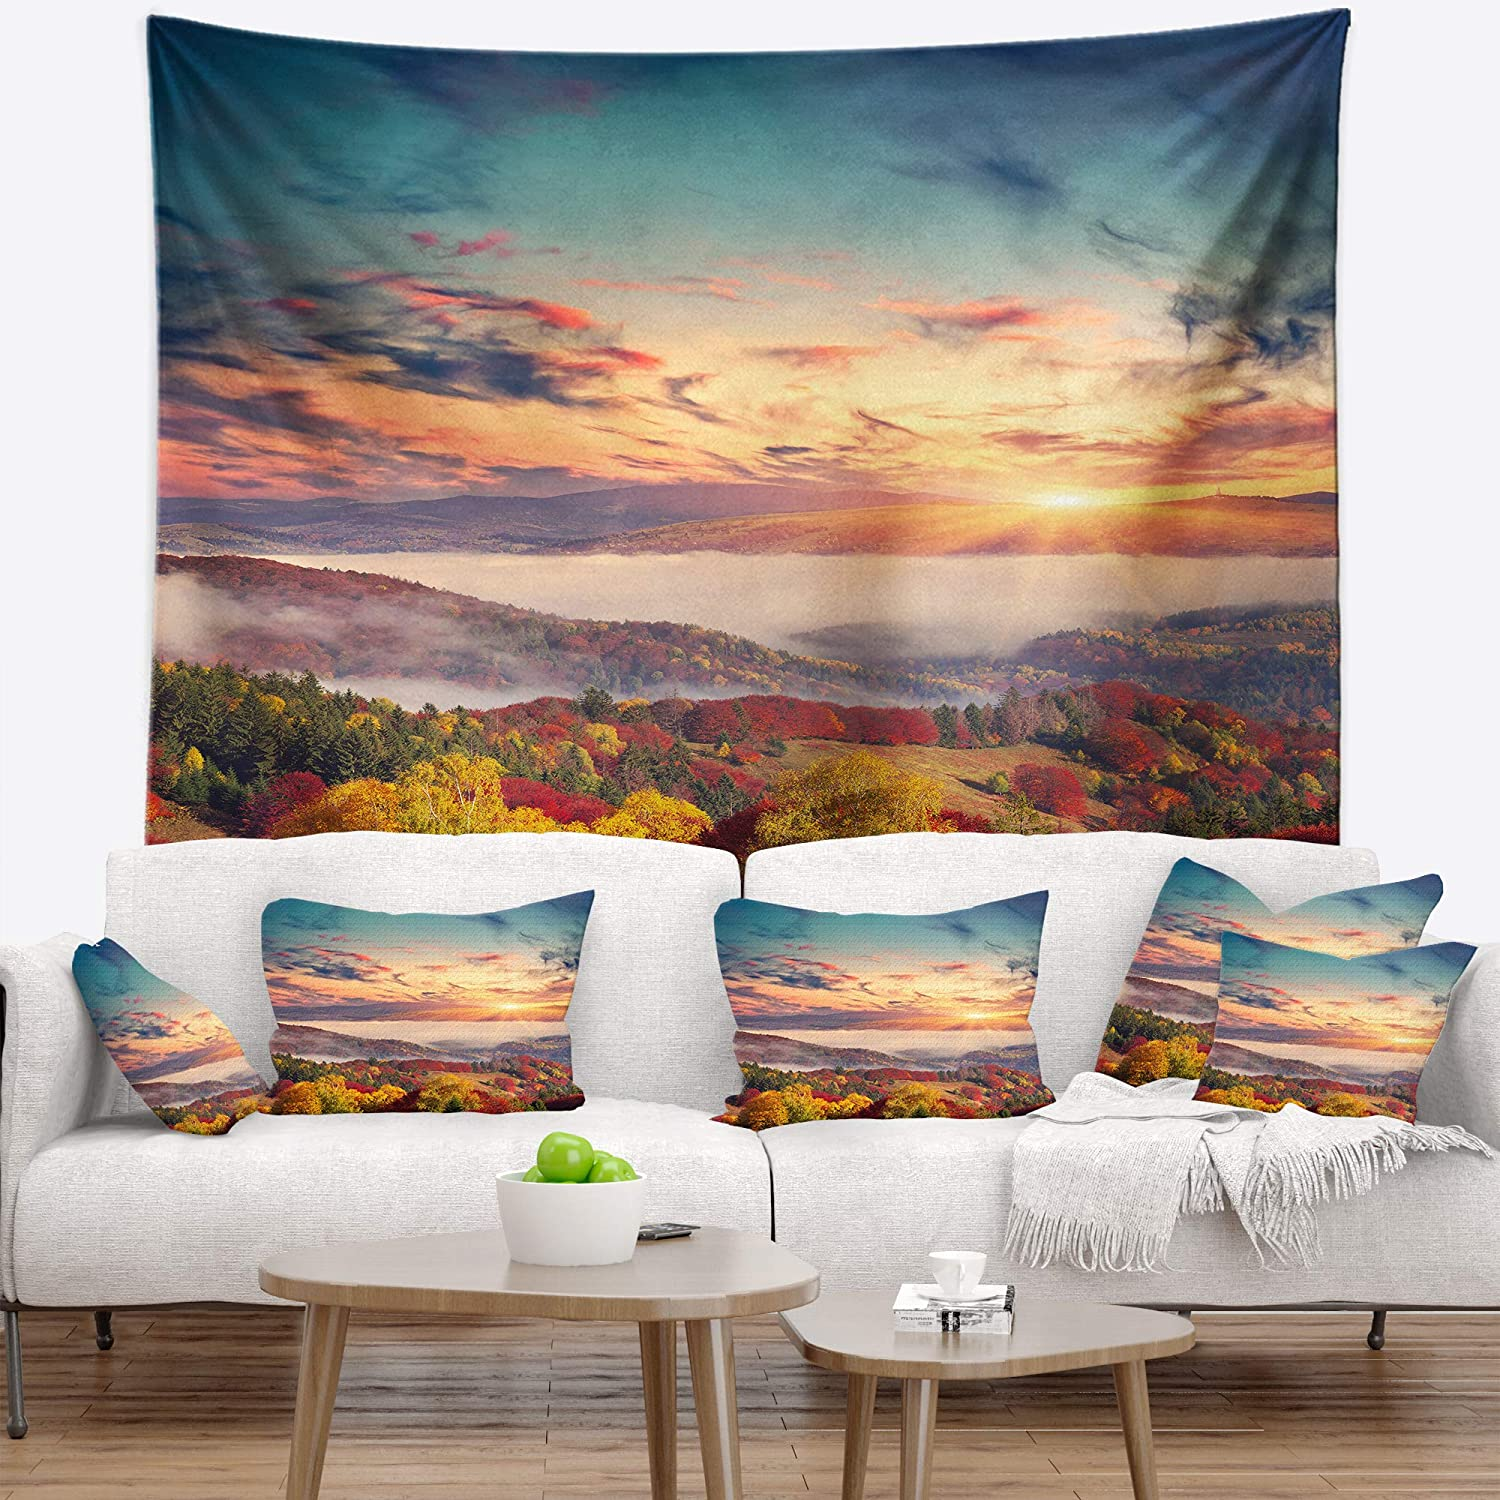 Designart TAP14595-32-39 ' Colorful Sunset in Foggy Mountains' Landscape Blanket Décor Art for Home and Office Wall Tapestry Medium: 32 in. x 39 in. Created On Lightweight Polyester Fabric